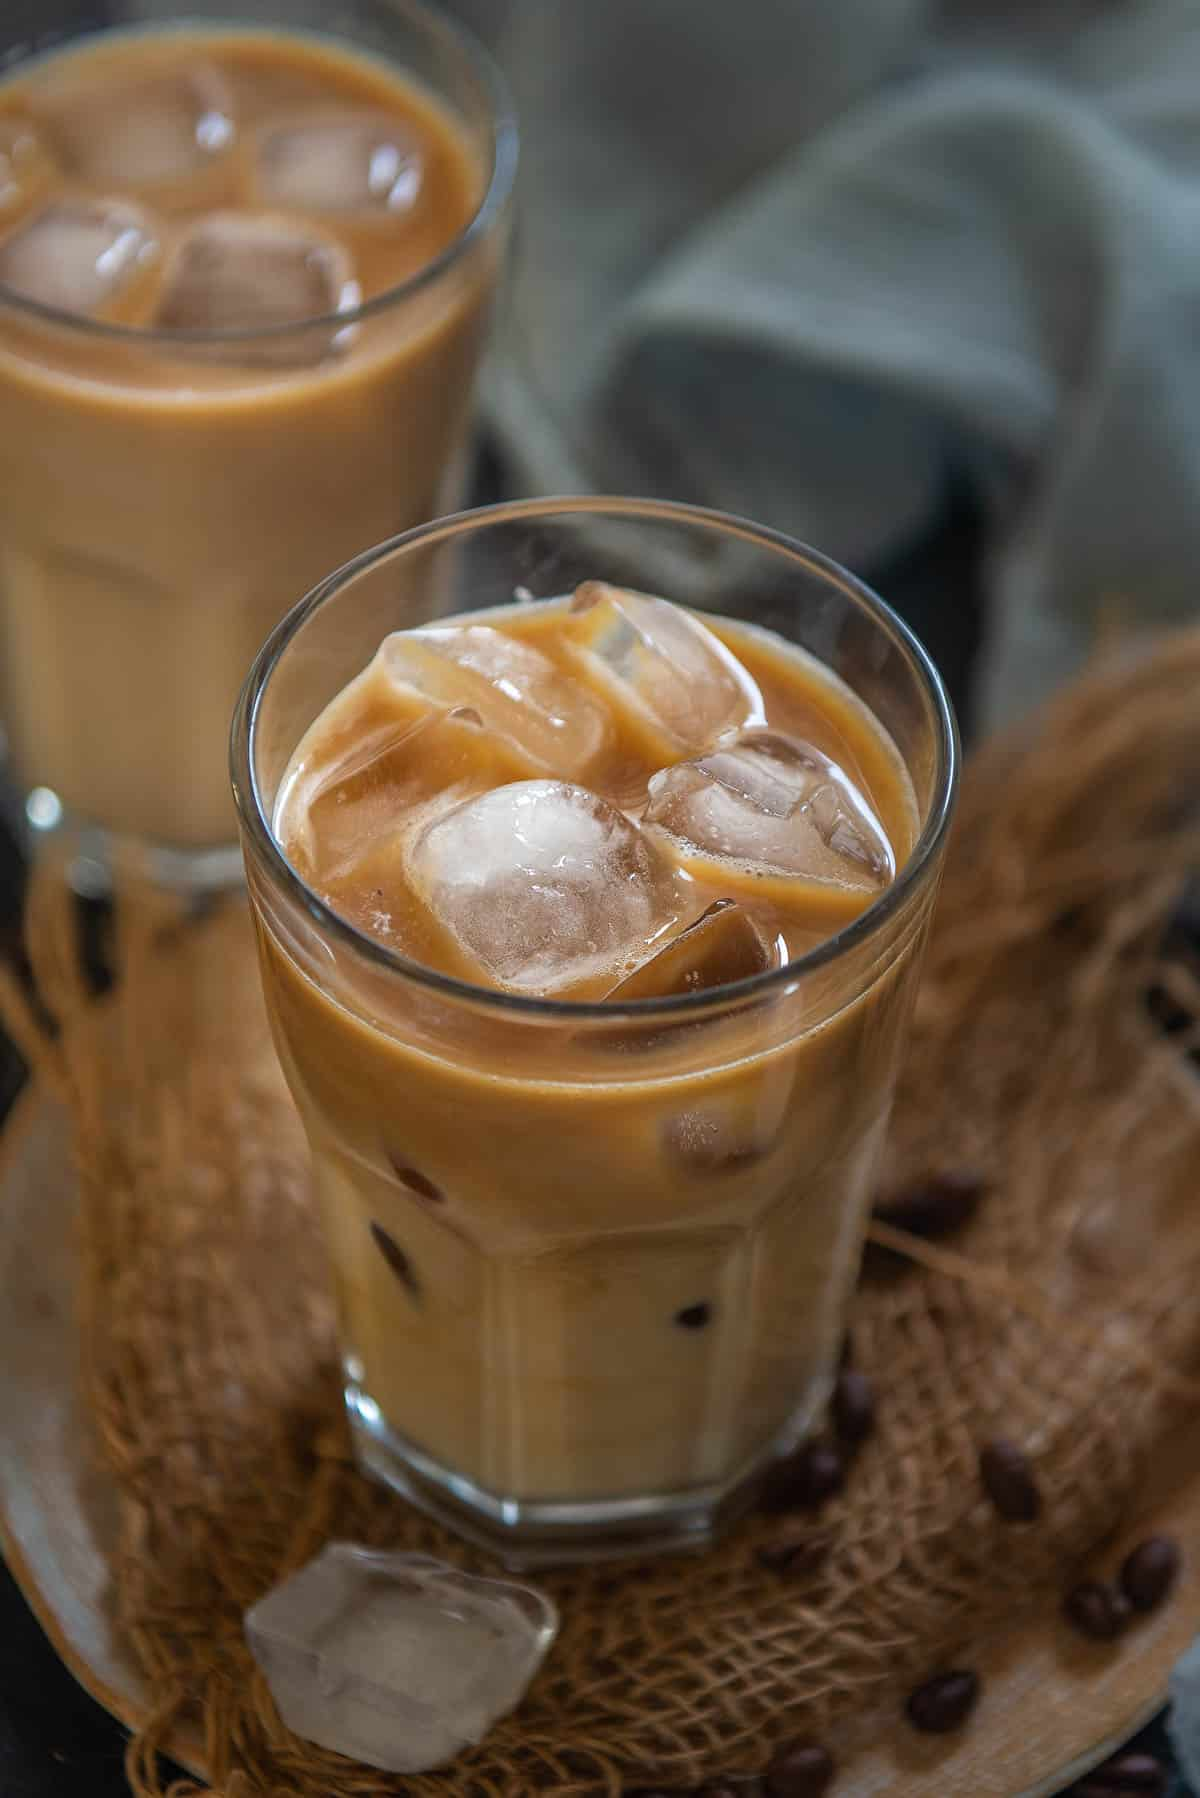 Iced vanilla latte served in a glass.